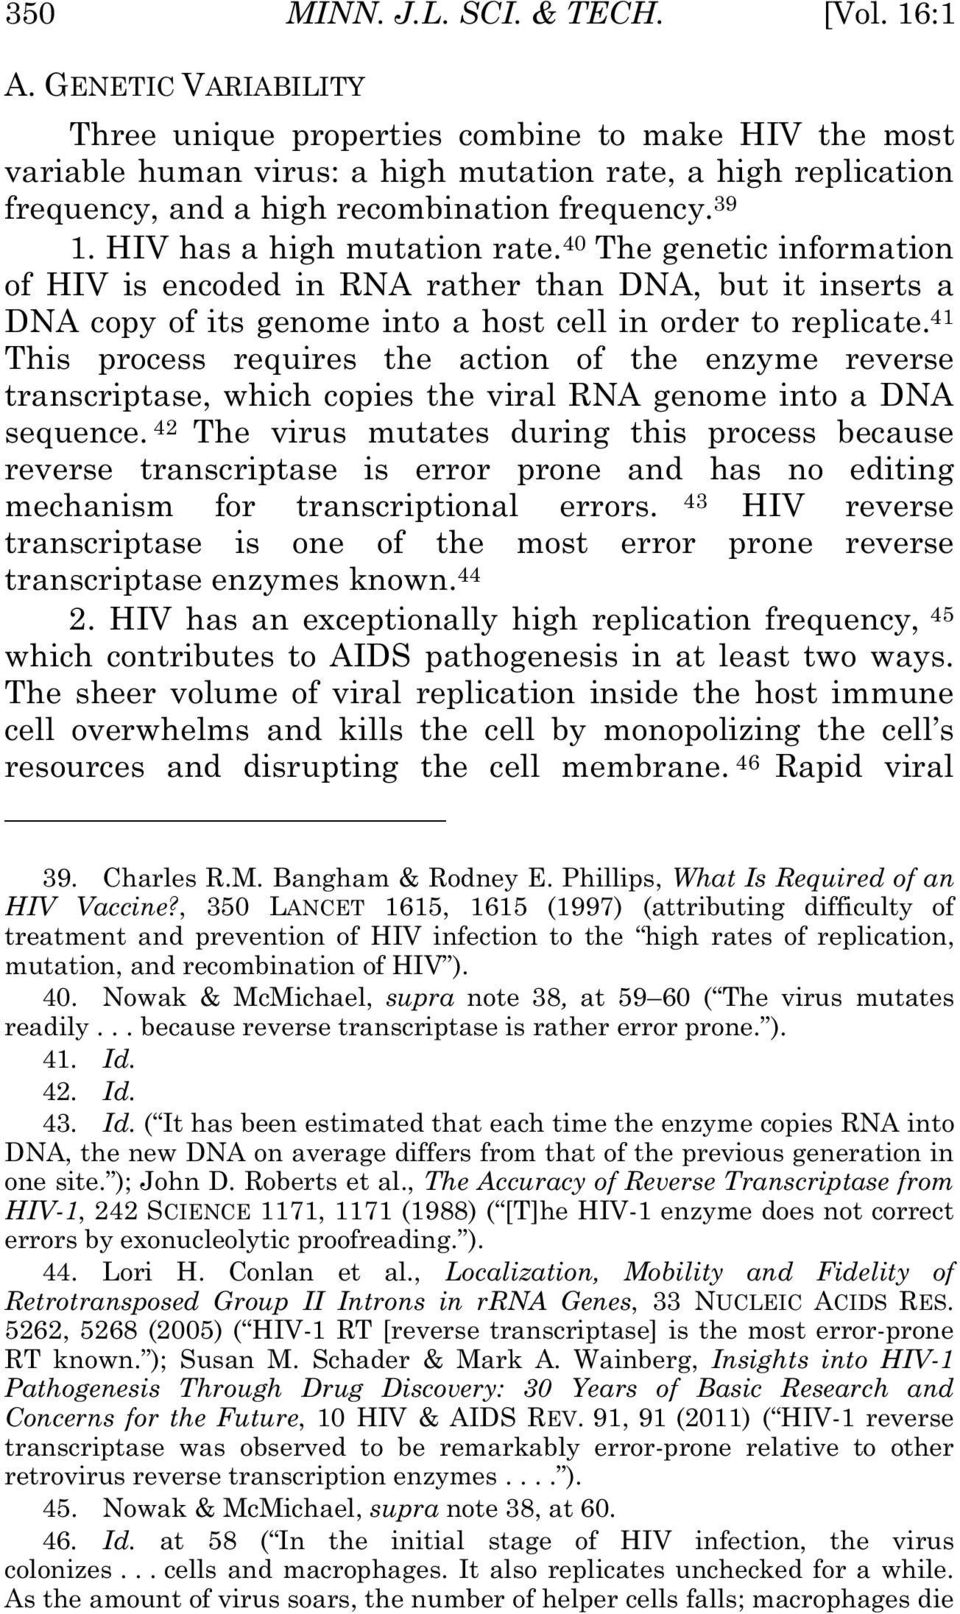 HIV has a high mutation rate. 40 The genetic information of HIV is encoded in RNA rather than DNA, but it inserts a DNA copy of its genome into a host cell in order to replicate.